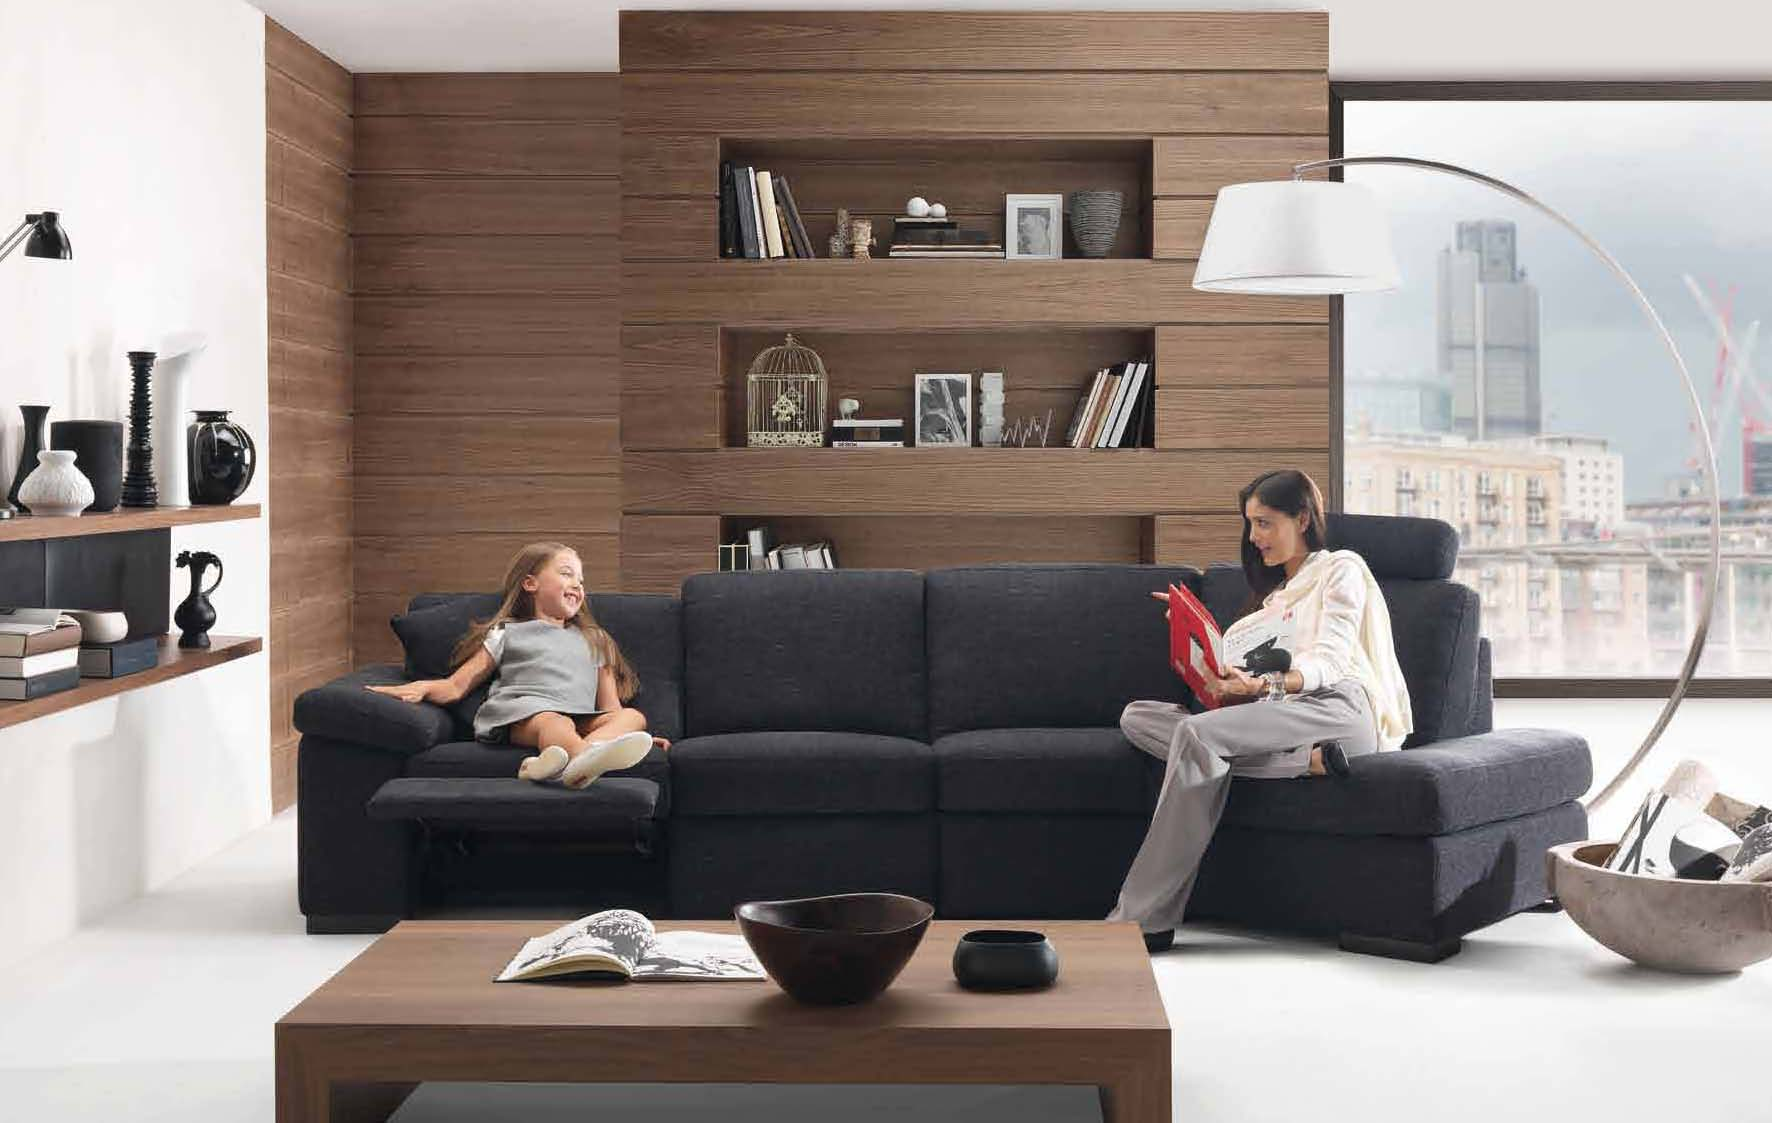 Living room styles 2010 by natuzzi for Family in the living room